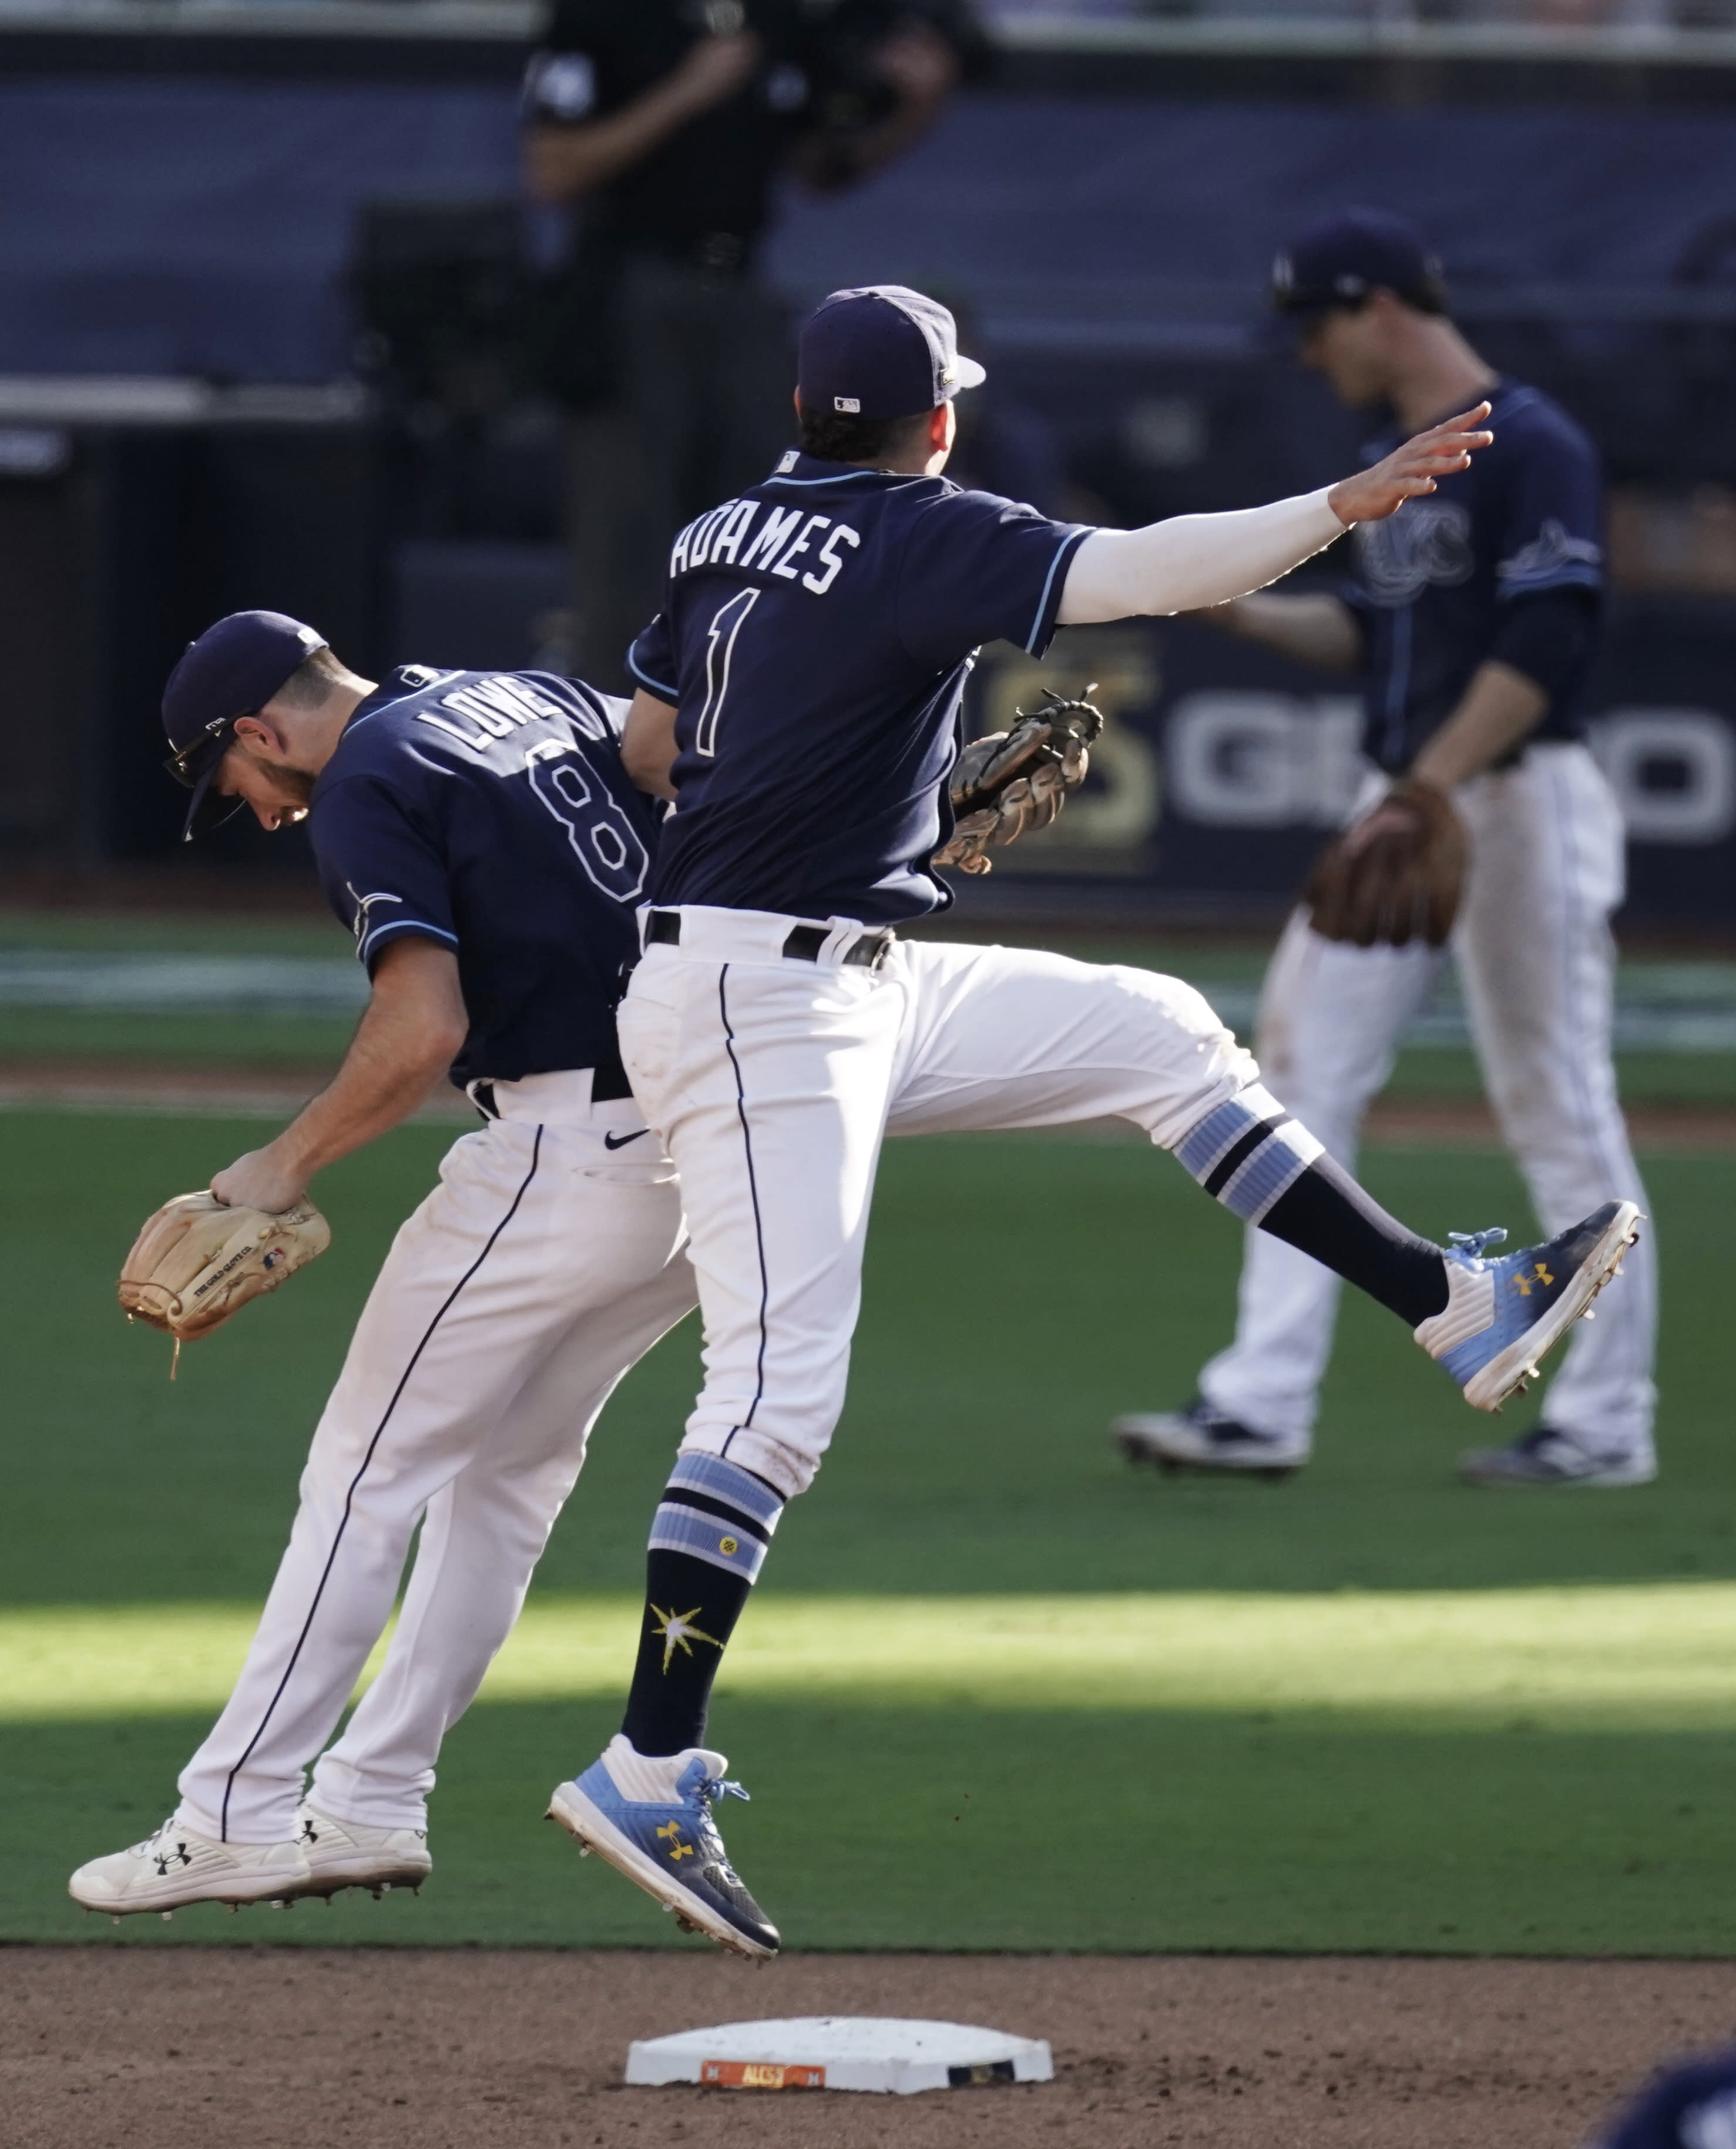 Tampa Bay Rays' Brandon Lowe (8) and Willy Adames celebrate after Game 2 of a baseball American League Championship Series, Monday, Oct. 12, 2020, in San Diego. The Rays defeated the Astros 4-2 to lead the series 2-0 games. (AP Photo/Jae C. Hong)